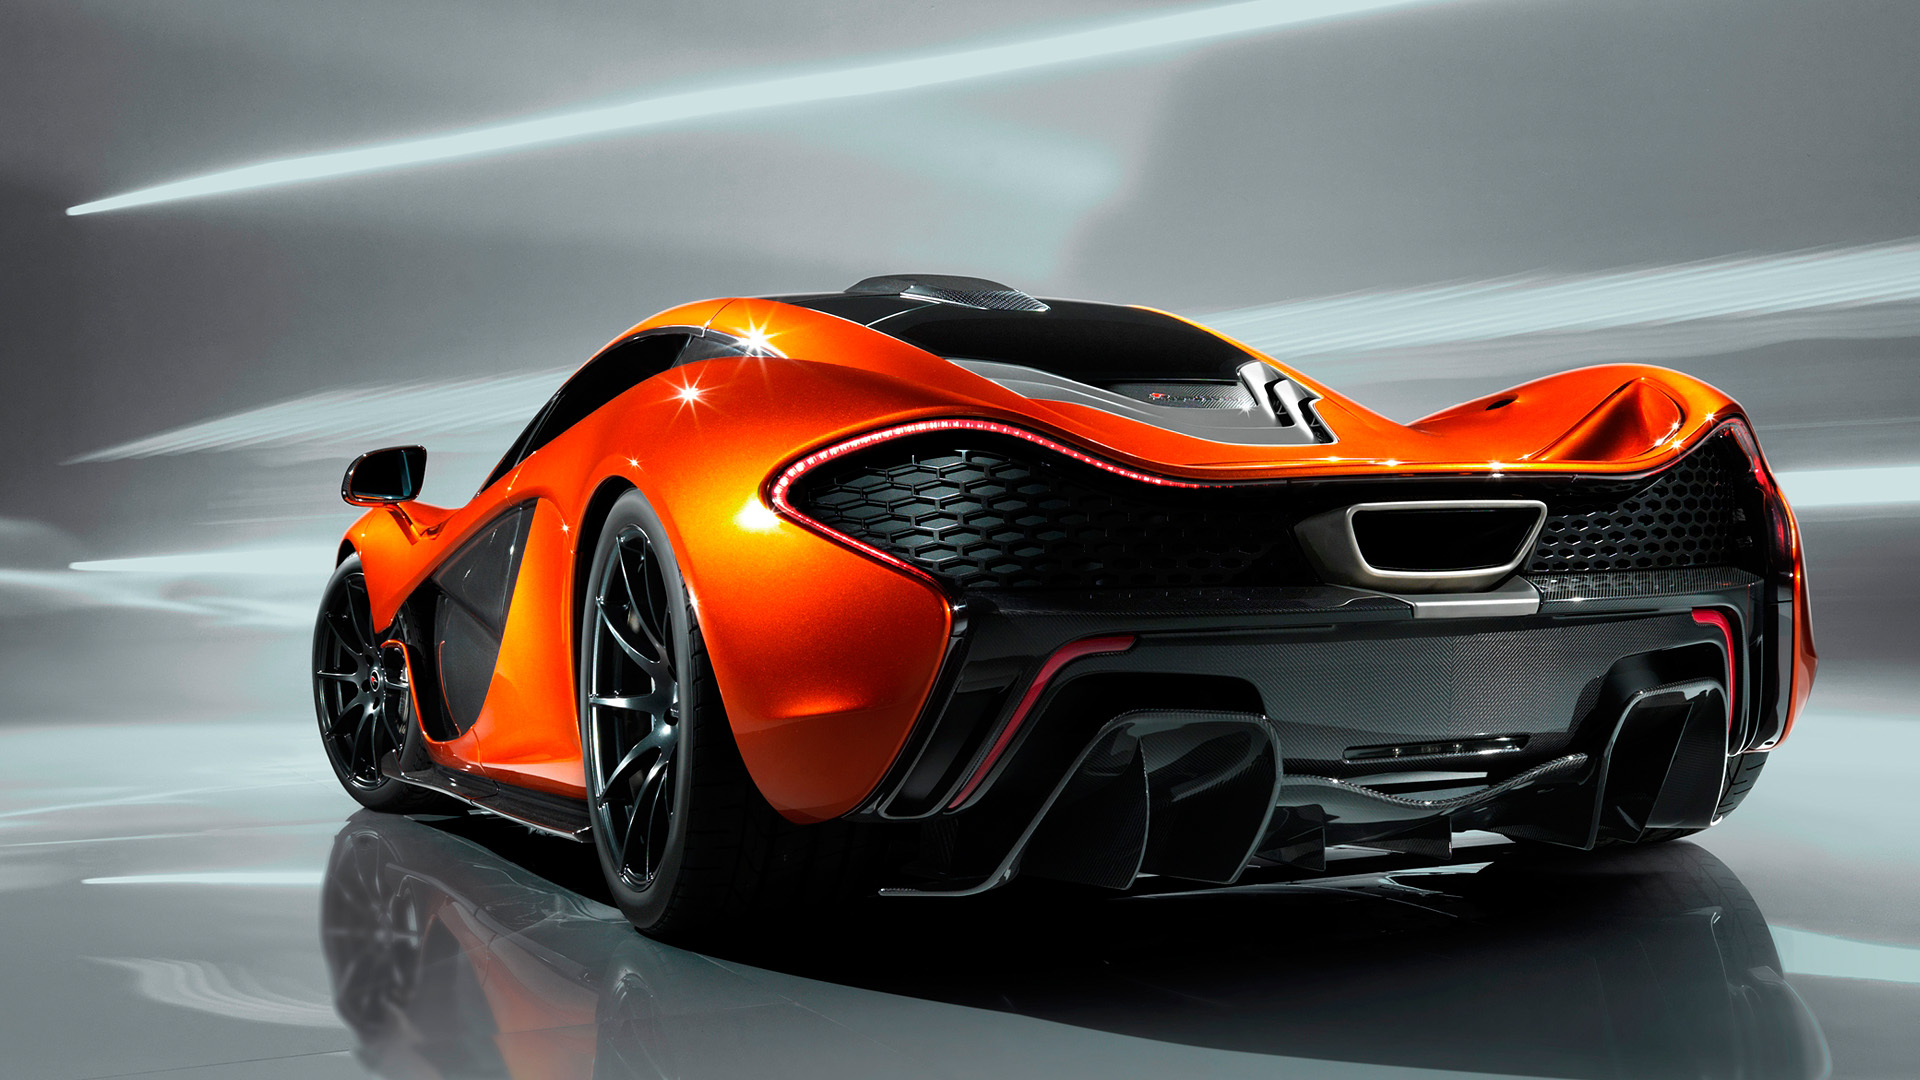 McLarenP1-orange-Car-HD-Wallpaper010